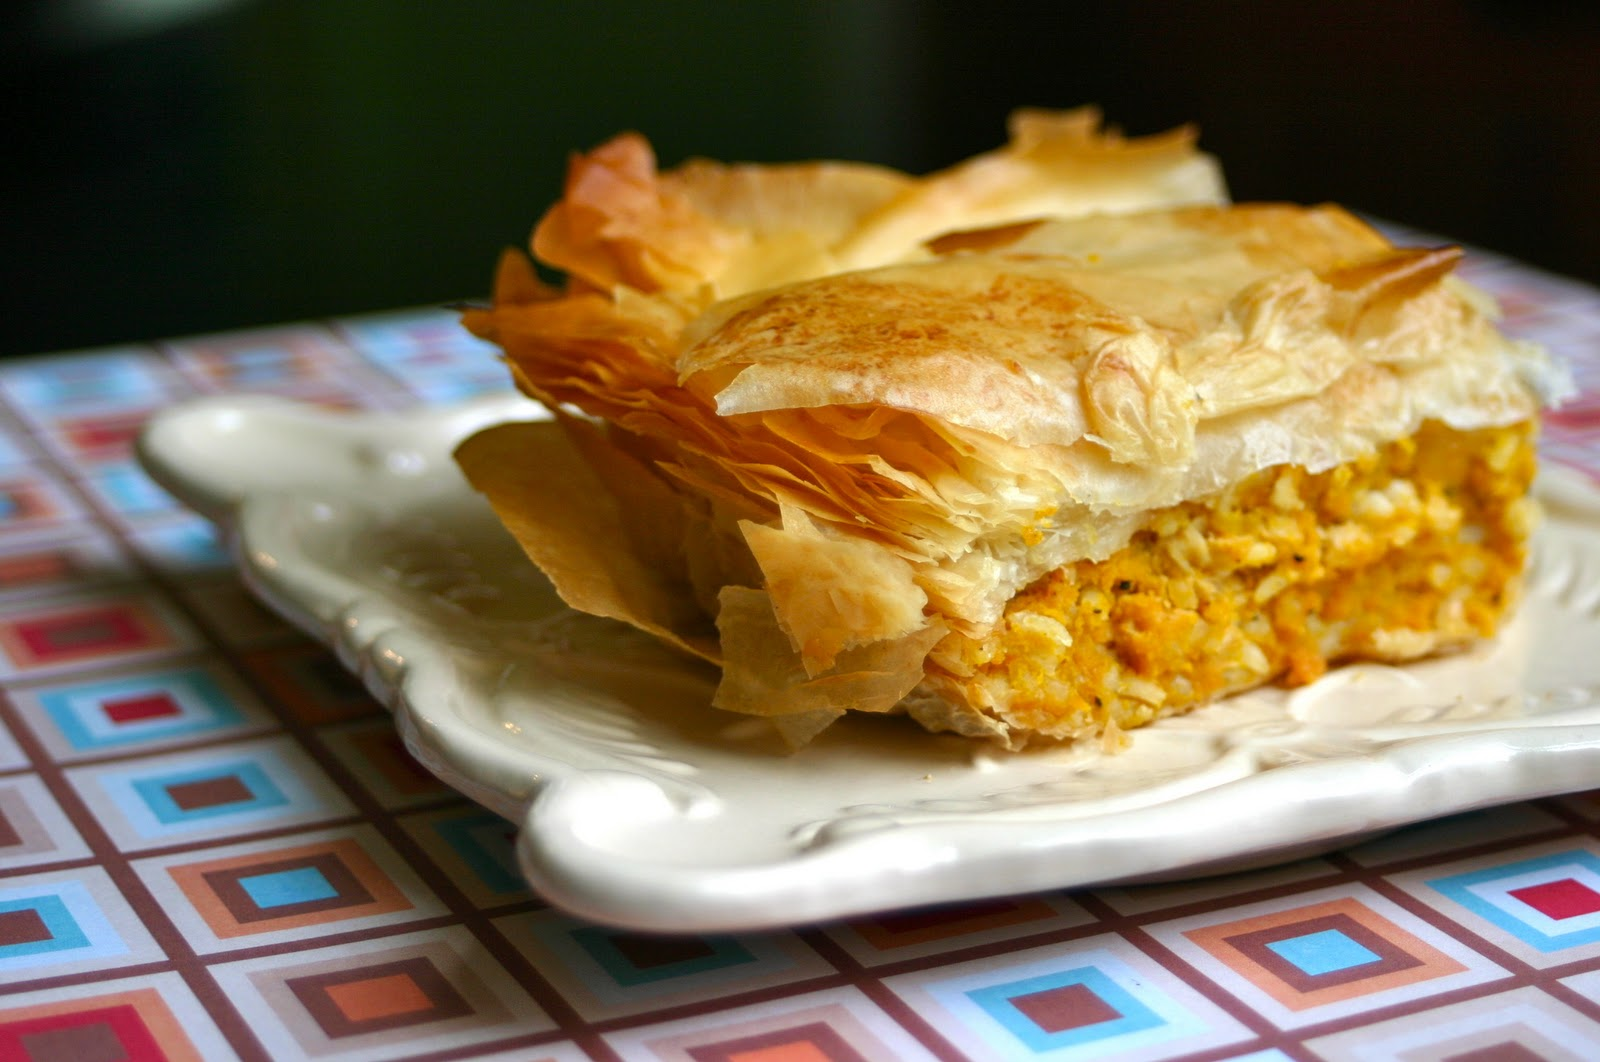 My Retro Kitchen: Kolokithopita- Savory Greek Pumpkin Pie